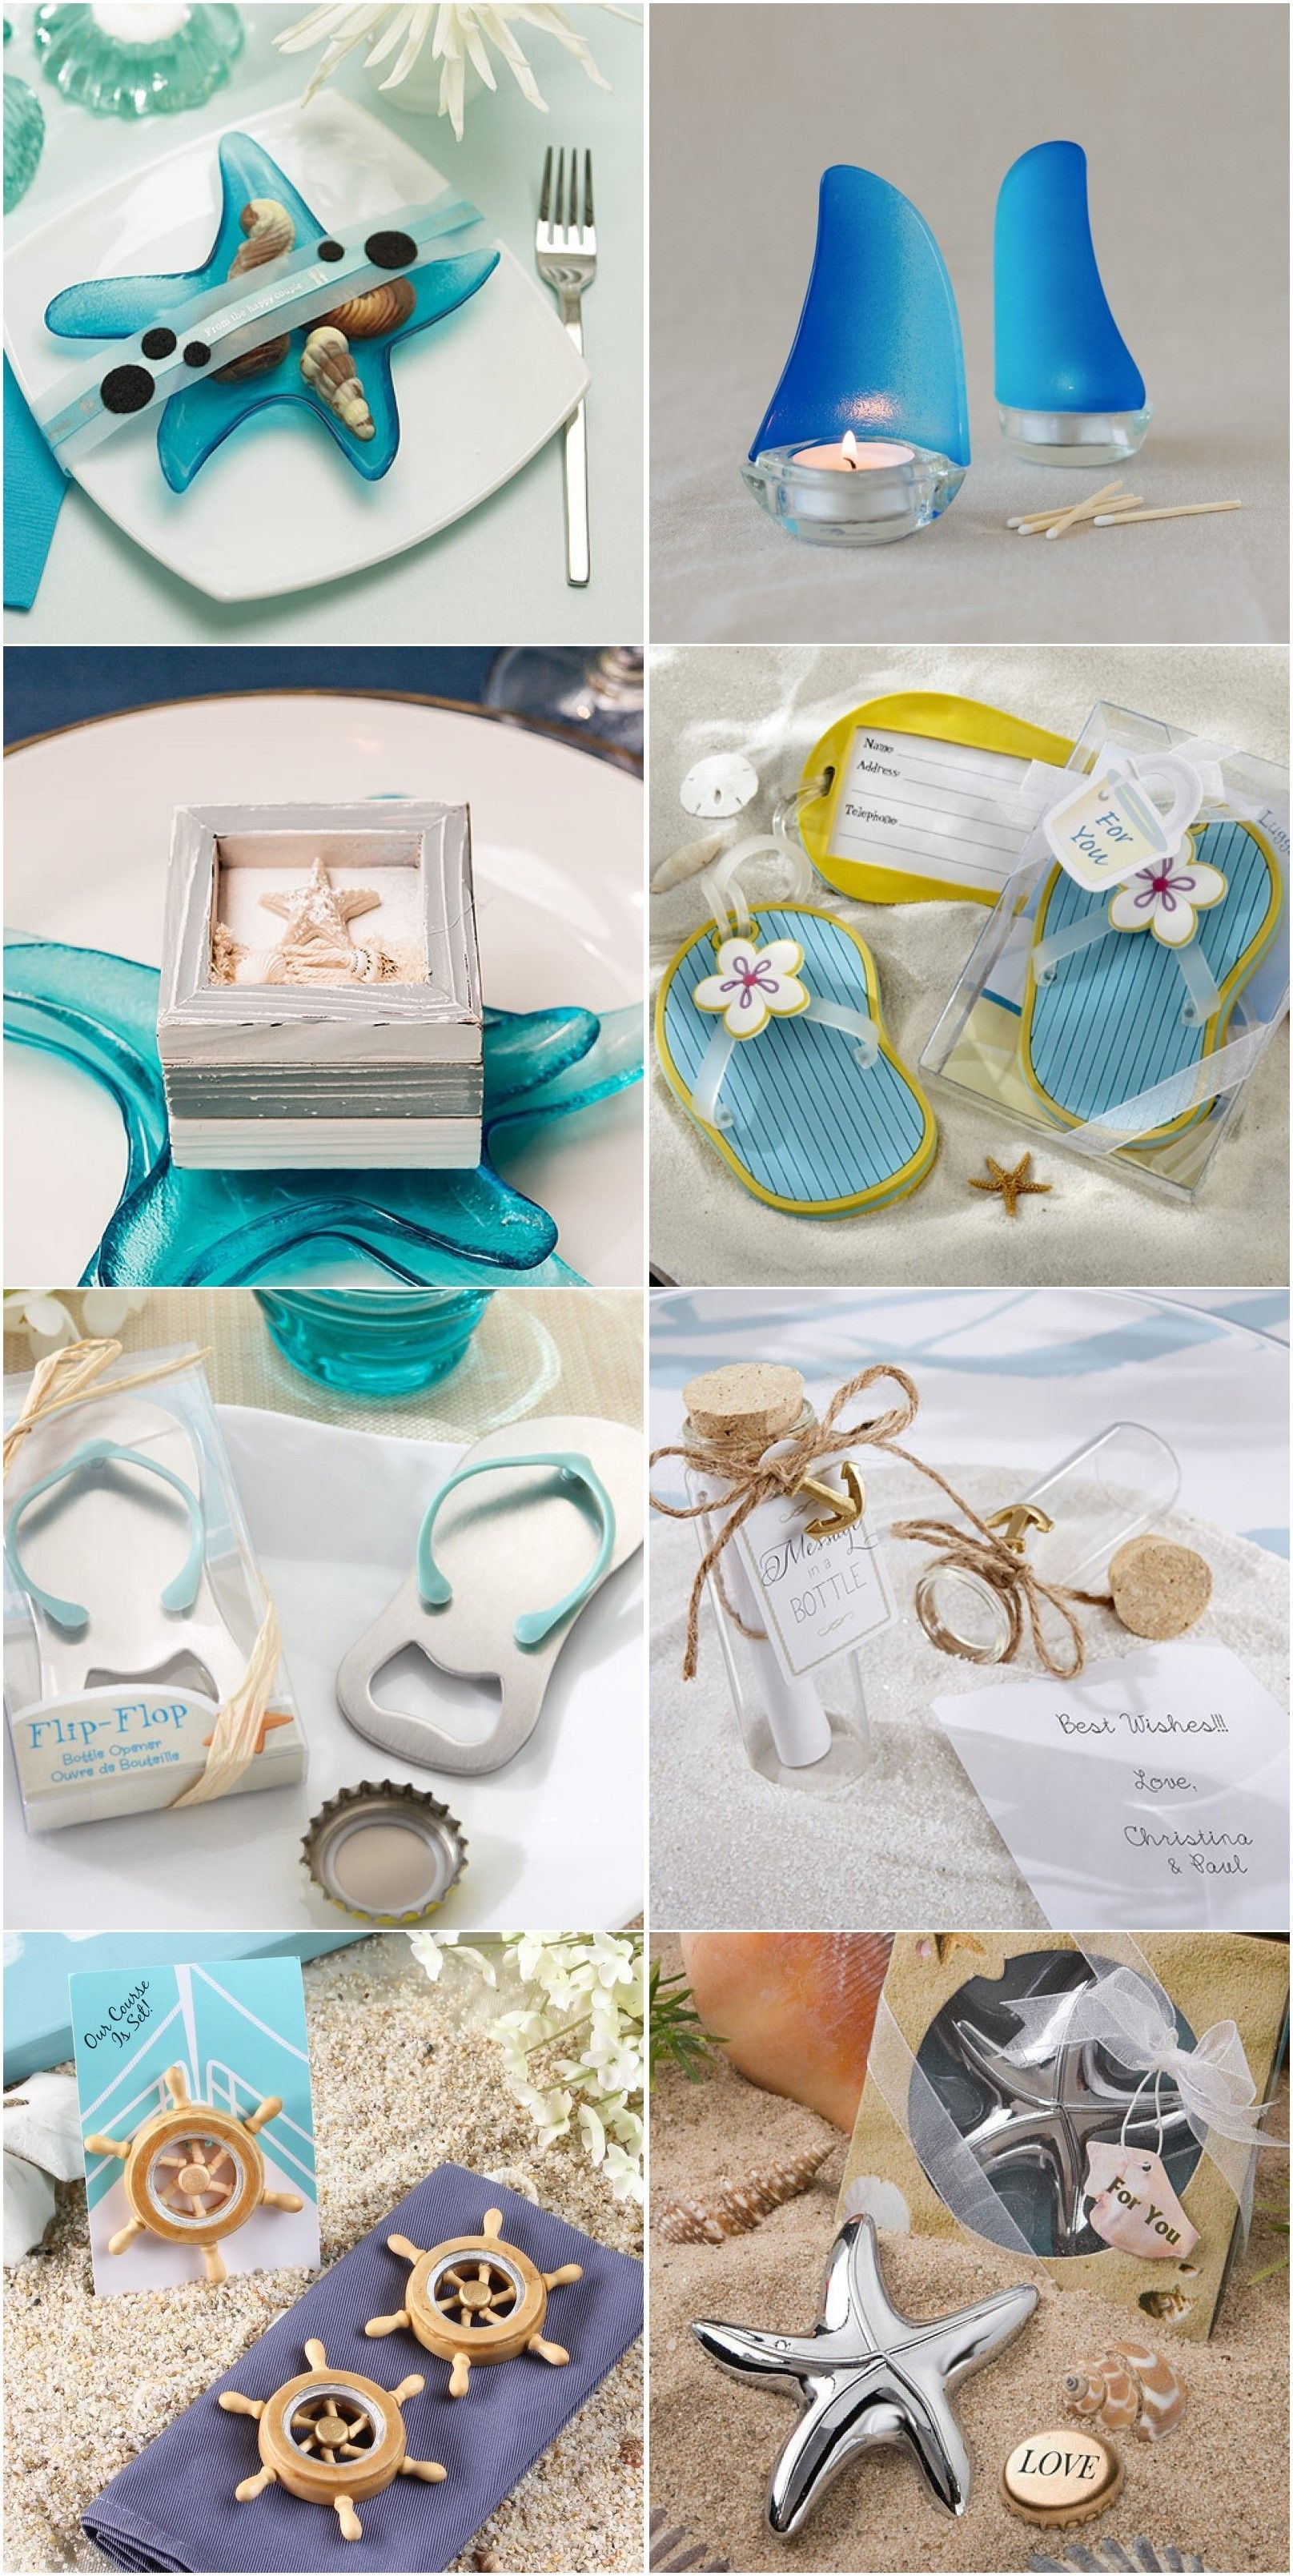 19 Beach Wedding Favor Ideas As Low As $1.1 Each! | Beach weddings ...